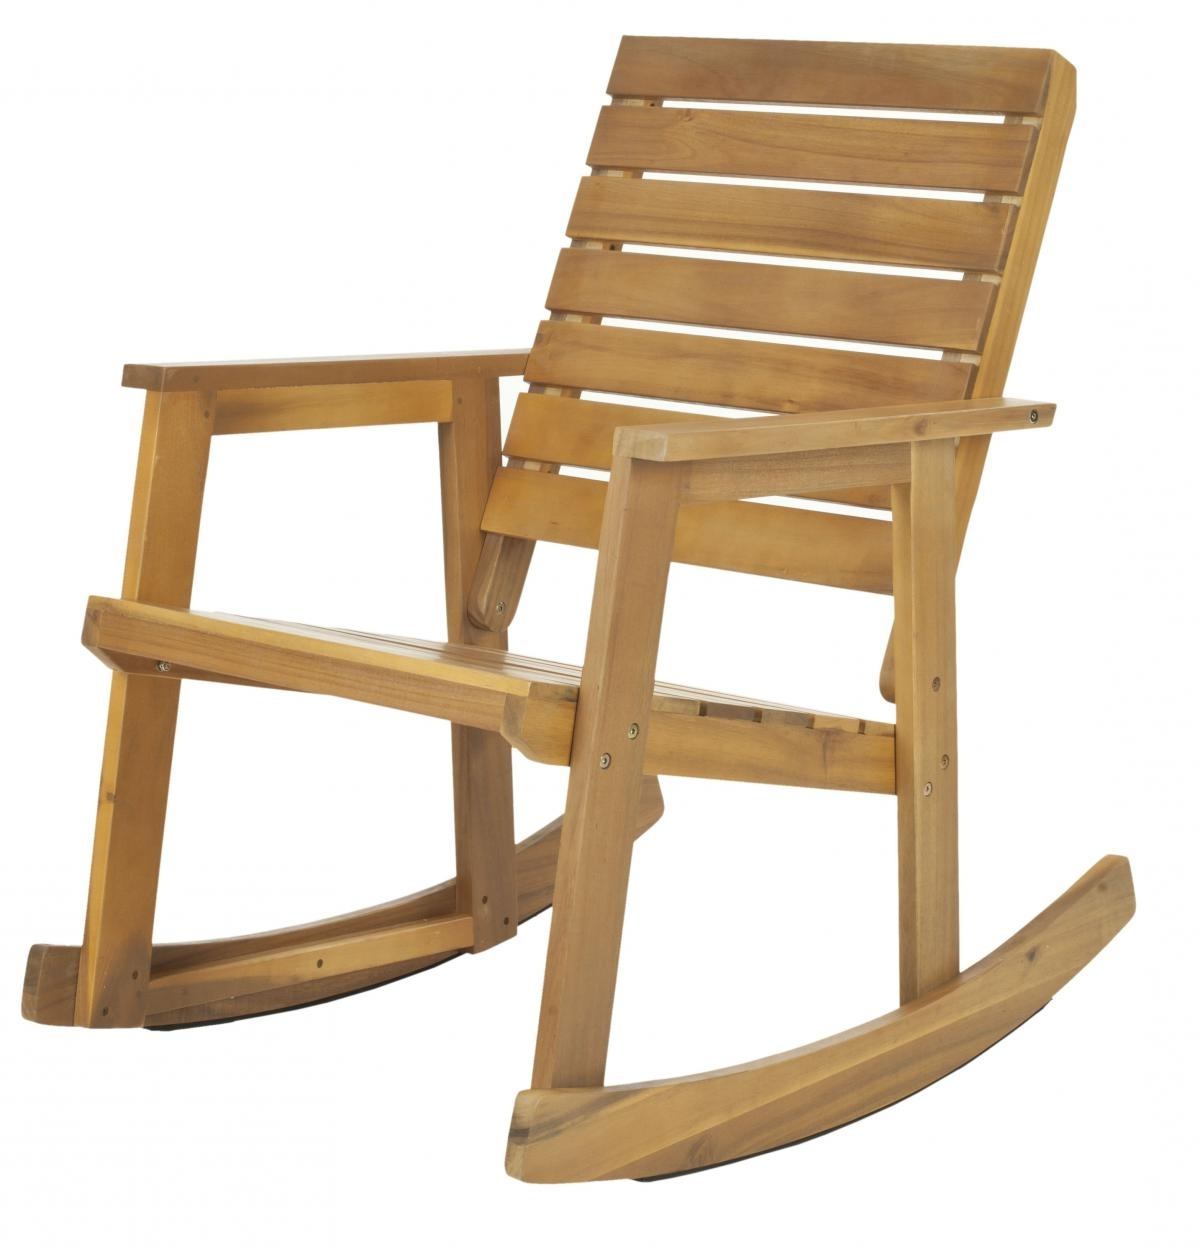 Popular Rocking Chairs At Sam's Club Within Fox6702B Outdoor Rocking Chairs, Rocking Chairs – Furnituresafavieh (View 11 of 20)